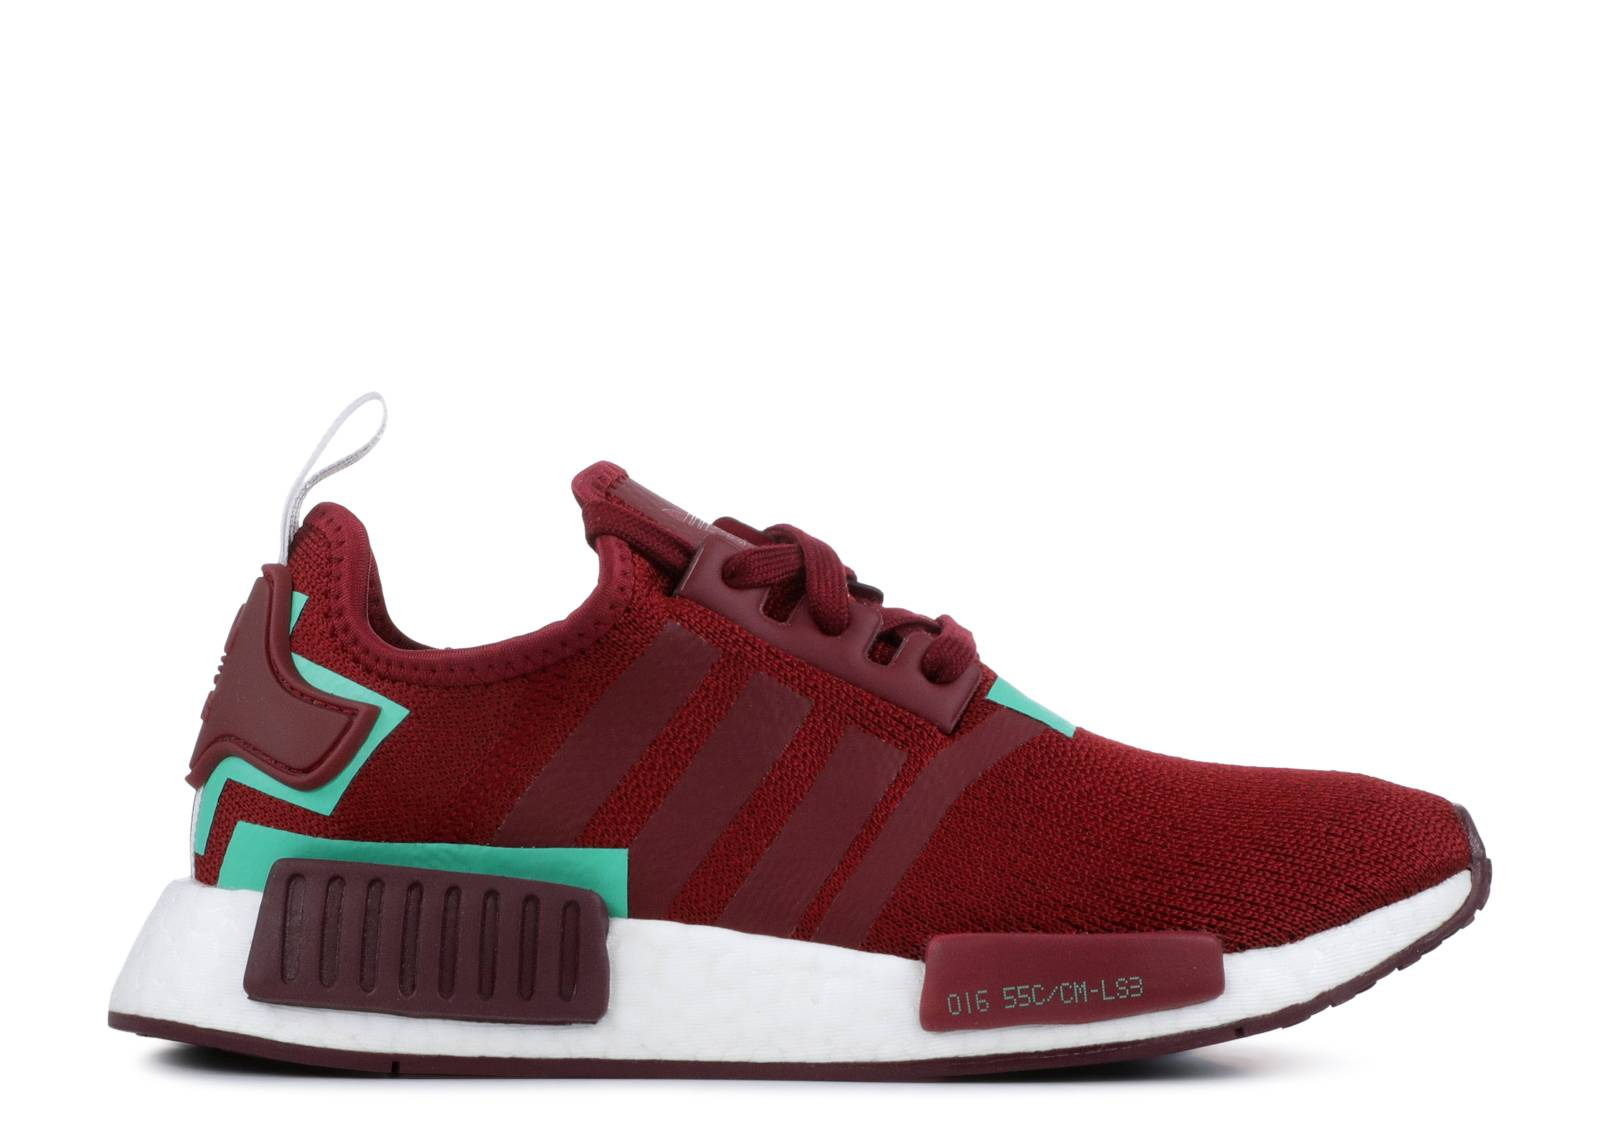 bf89be5f13 Adidas NMD - adidas Originals Men's & Women's Shoes | Flight Club